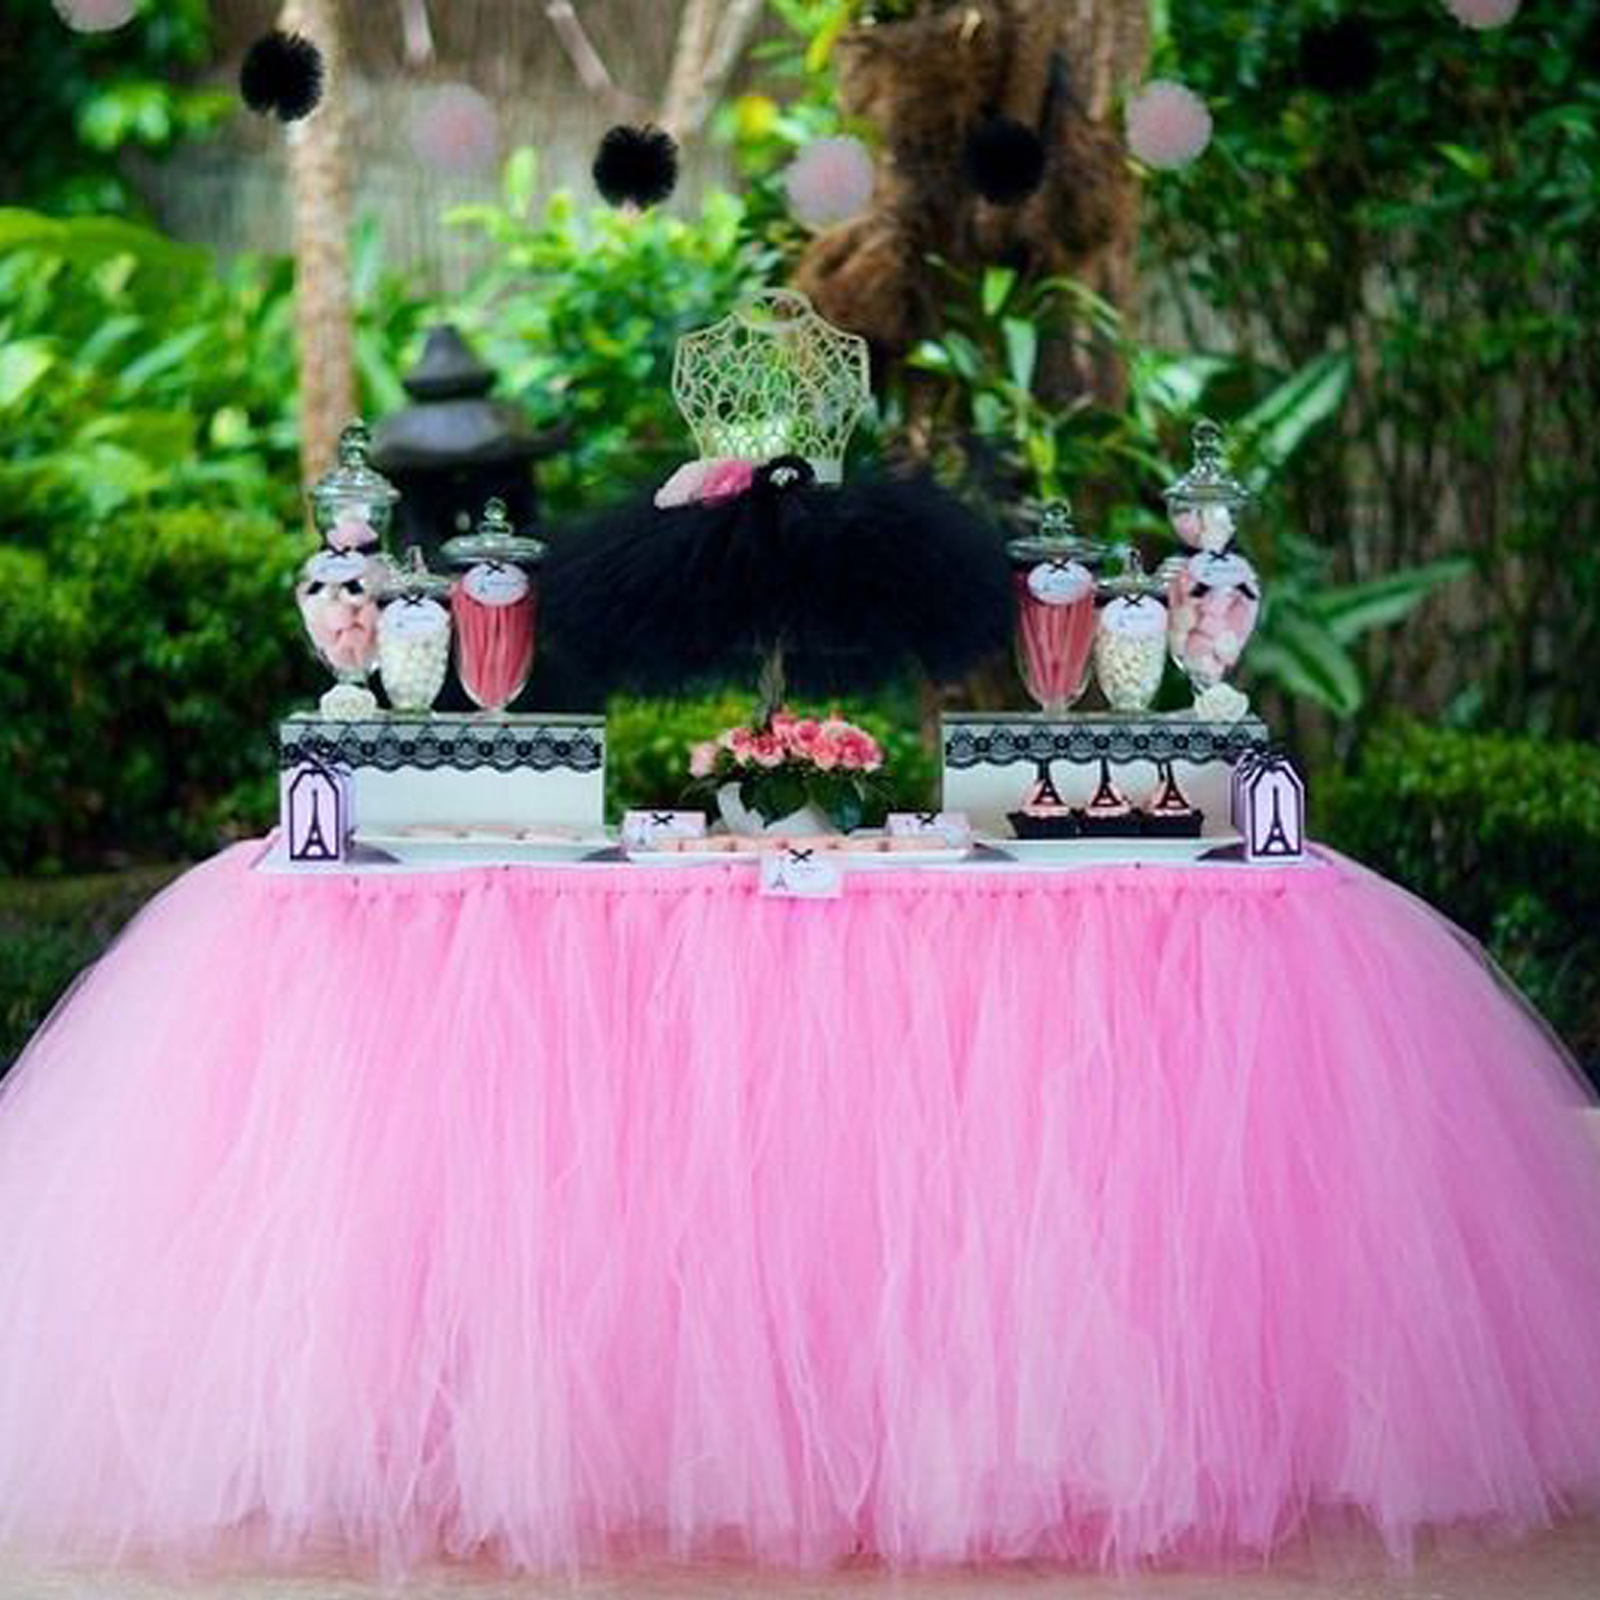 1pcs Table Skirt For Birthday Baby Shower Wedding Party Tulle Tutu Table Skirt Decorations Diy Craft For Home Party Decor